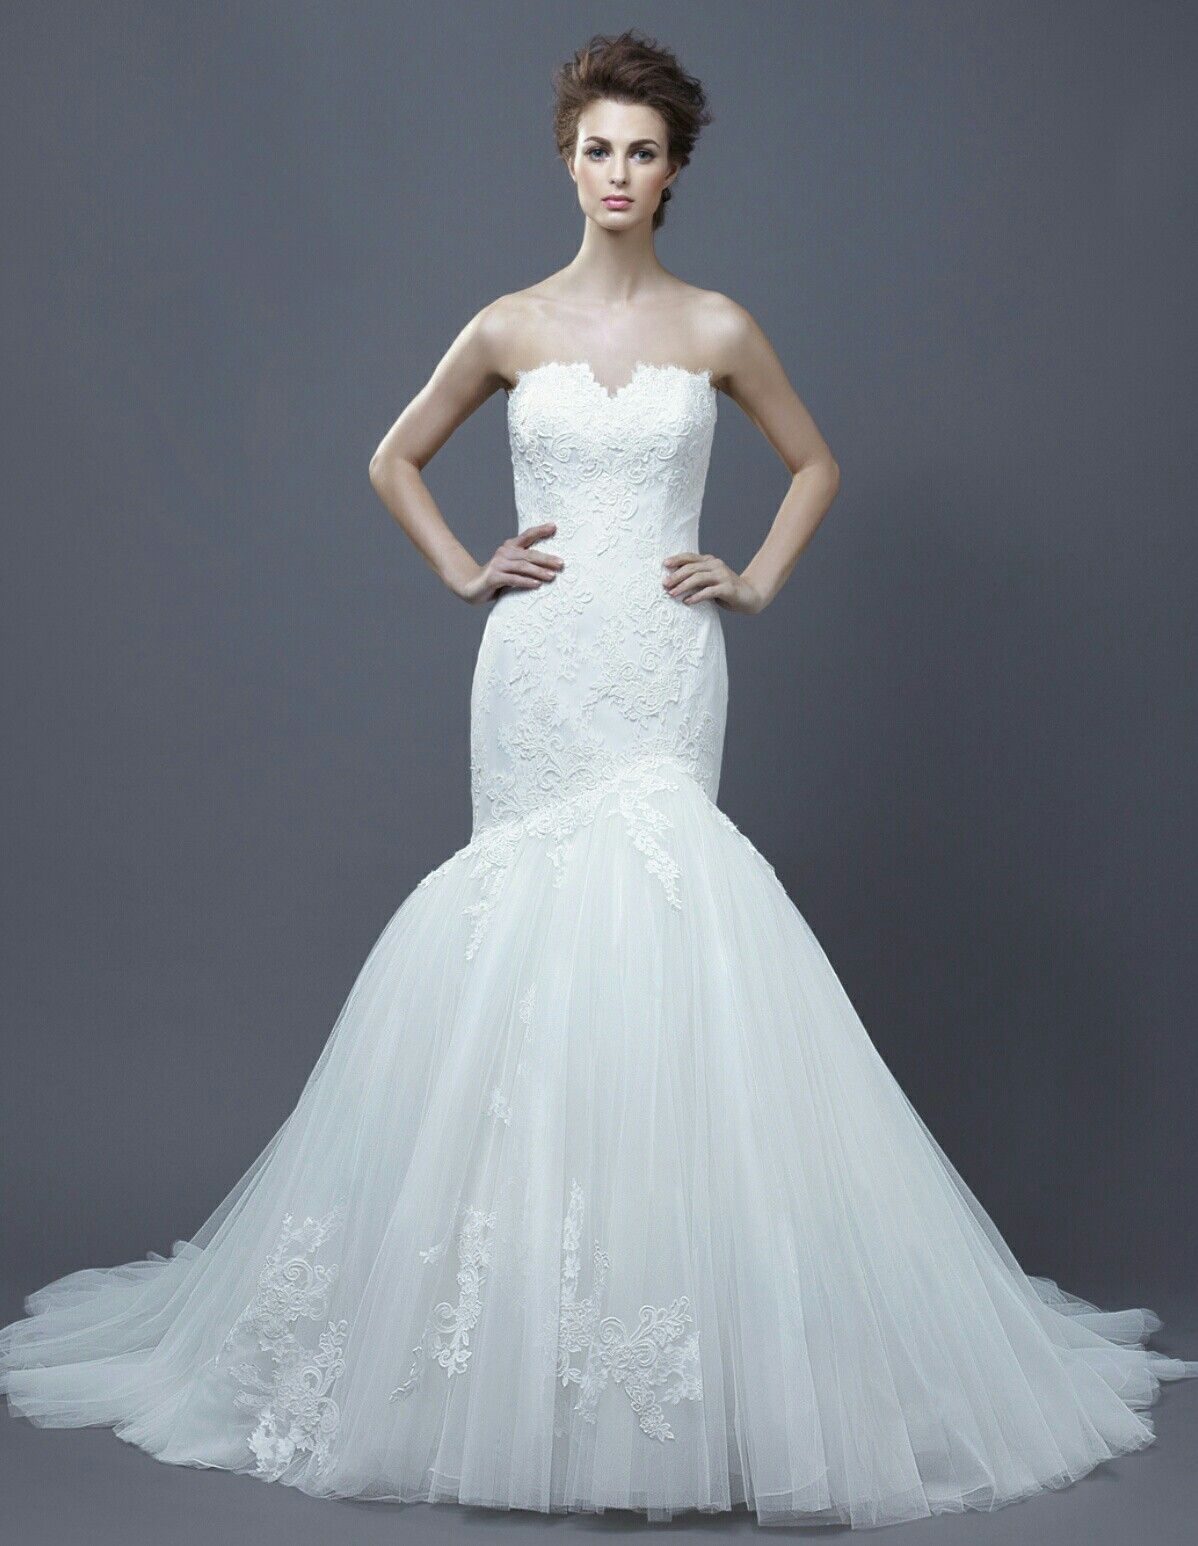 Enzoani | All about wedding /ideas/bridal special occasion dresses ...